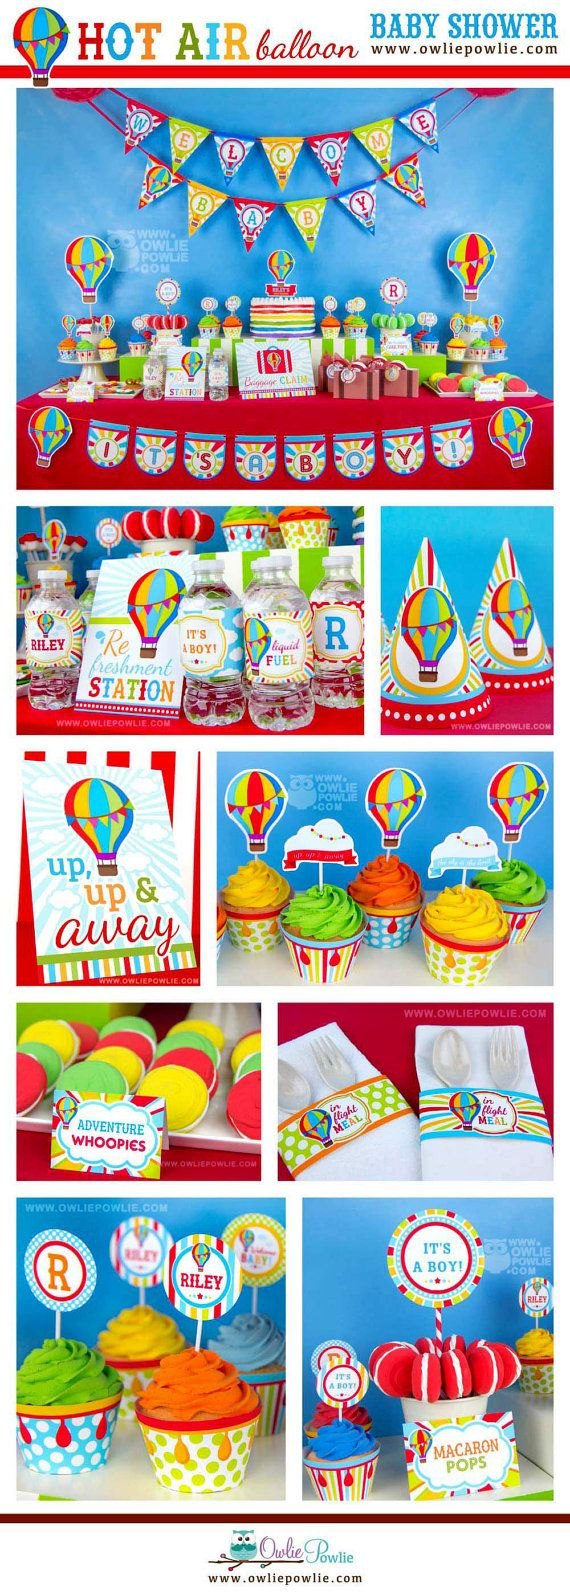 Hot Air Balloon BABY Shower Party Printable Package & Invitation, INSTANT DOWNLOAD, You Edit Yourself with Adobe Reader